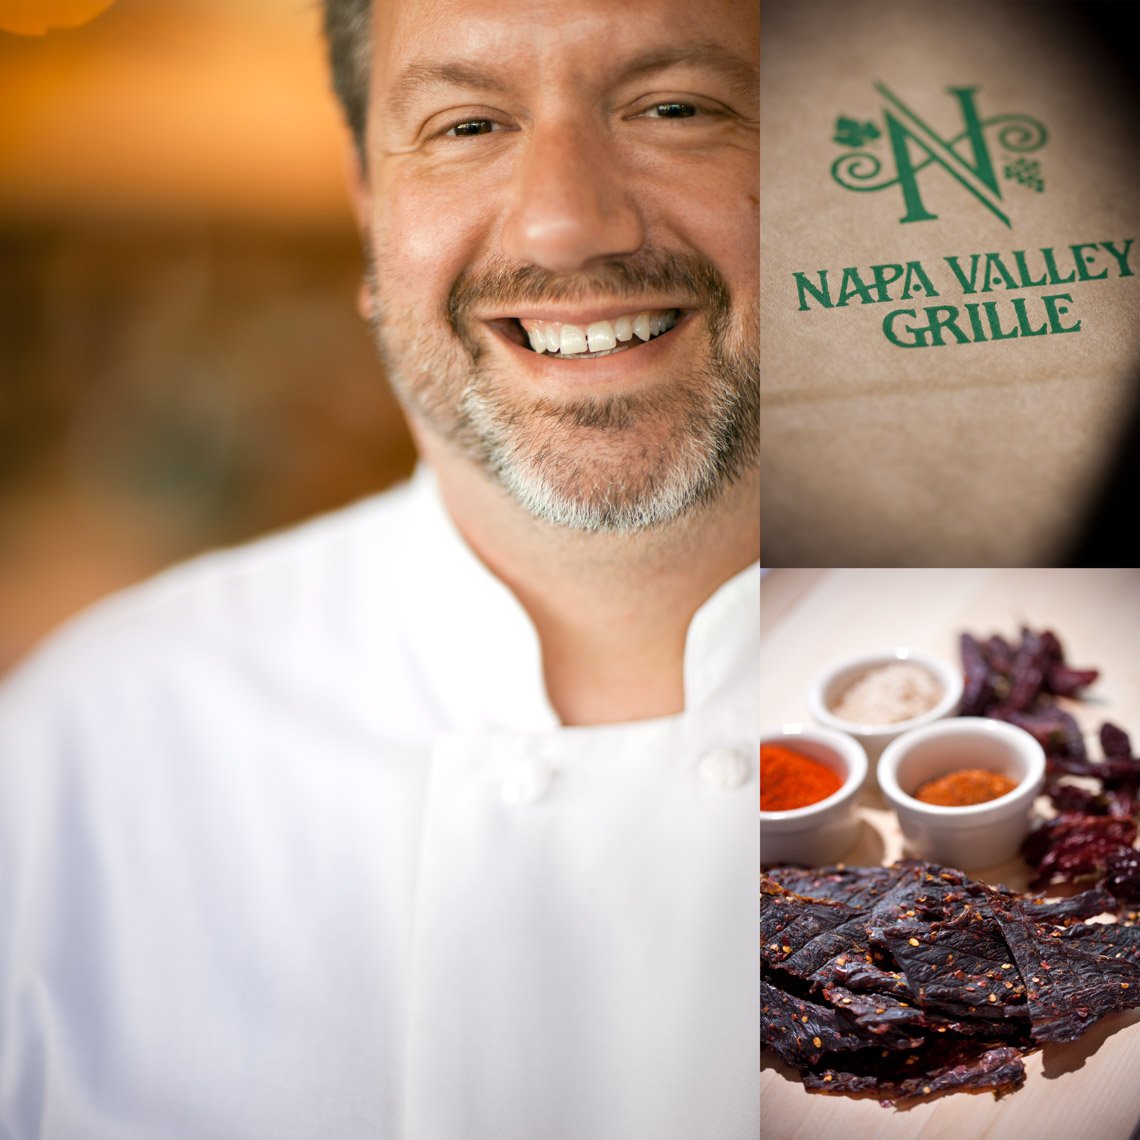 Los Angeles Photographer | Dana Hursey Photography | Top Chef Photography | Joseph Gillard - Napa Valley Grille